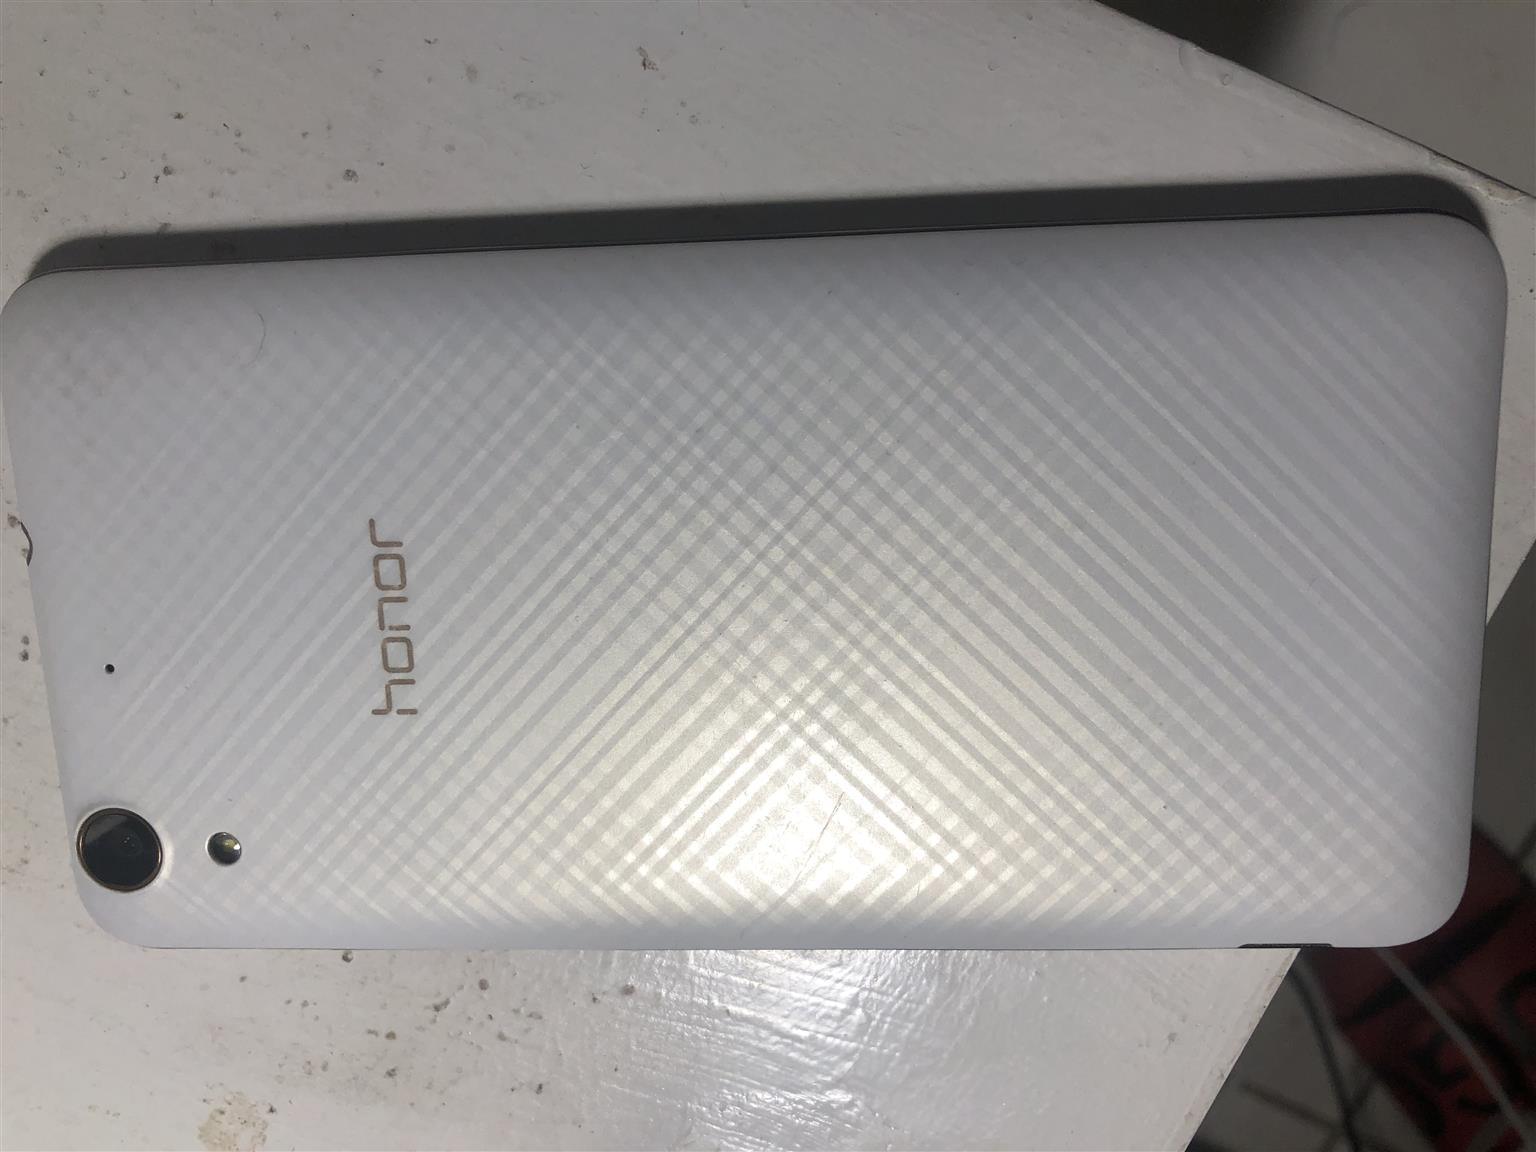 Honor android, dual sim cell phone for sale